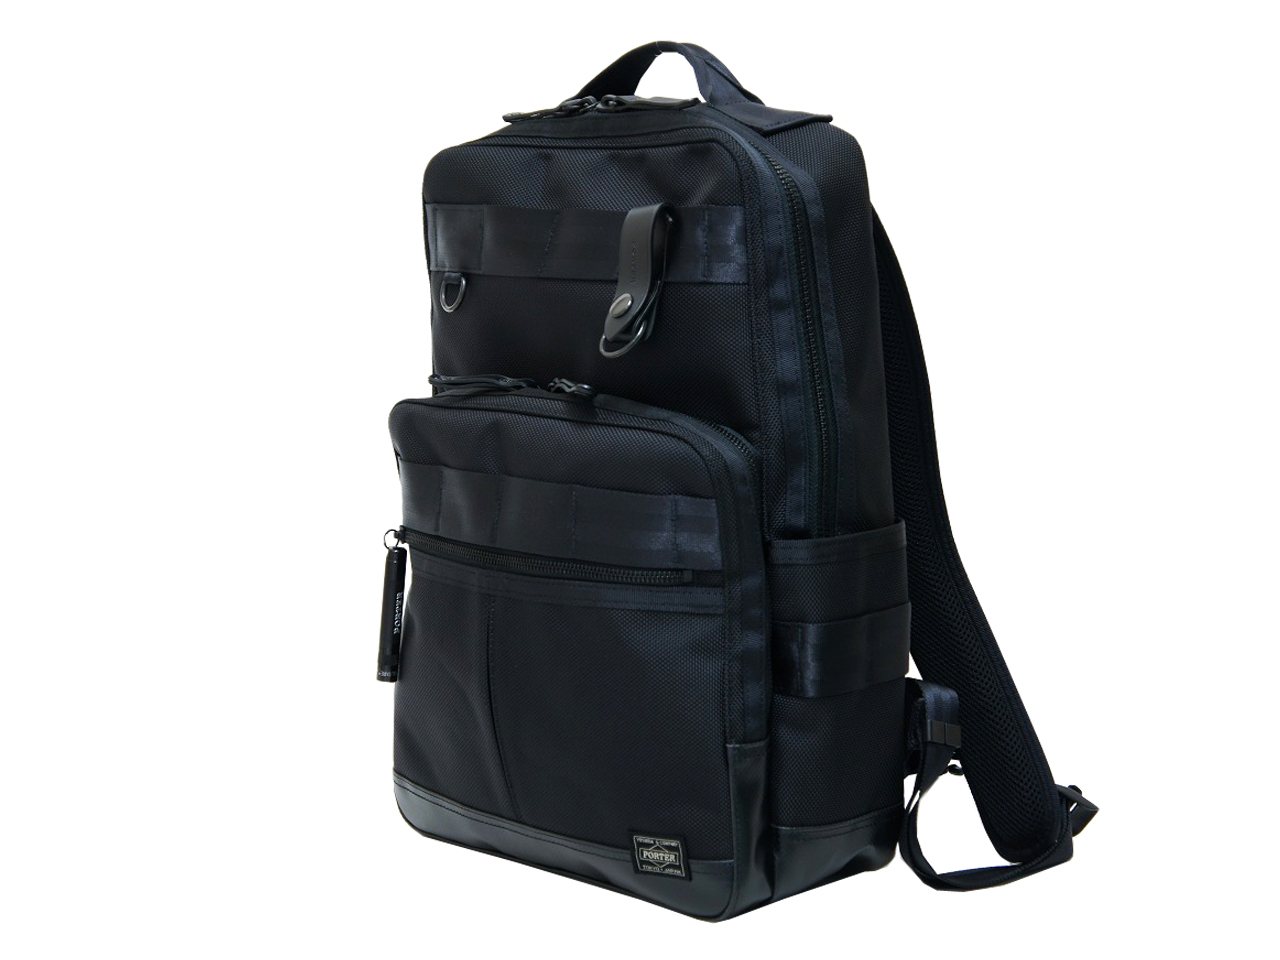 (Only in JAPAN.) 吉田カバン PORTER ポーター ヒート リュック デイパック 703-17932(This product is not for overseas customer.)